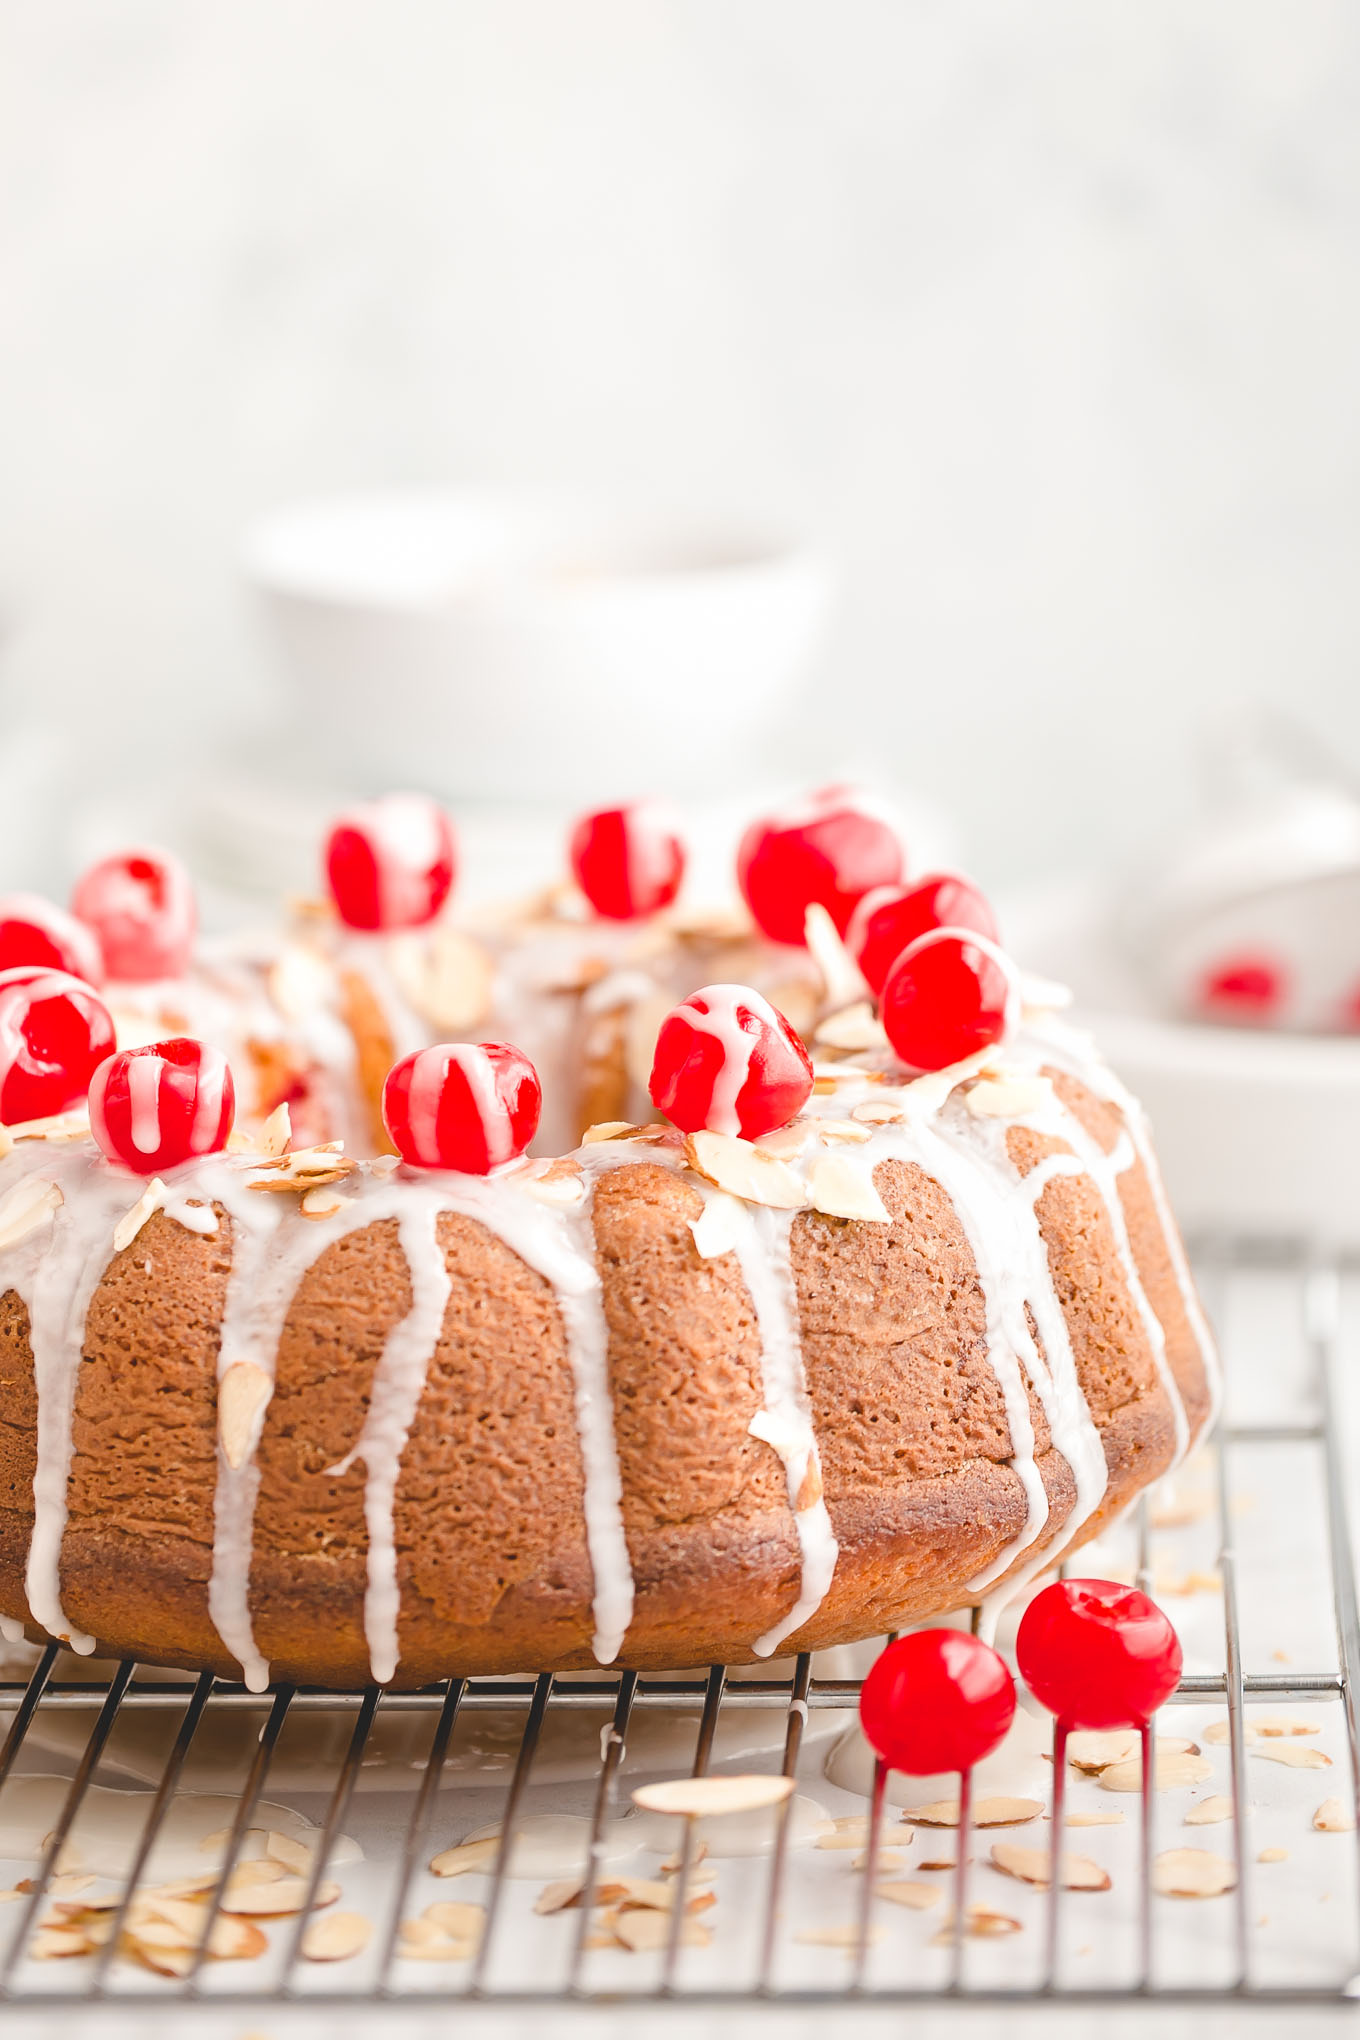 Easy Cherry Almond Bundt Cake - Made with yellow cake mix, instant vanilla pudding mix, almond extract, a jar of maraschino cherries, and sliced almonds, this easy bundt cake recipe is full of irresistible cherry almond flavor and effortlessly soft and tender.